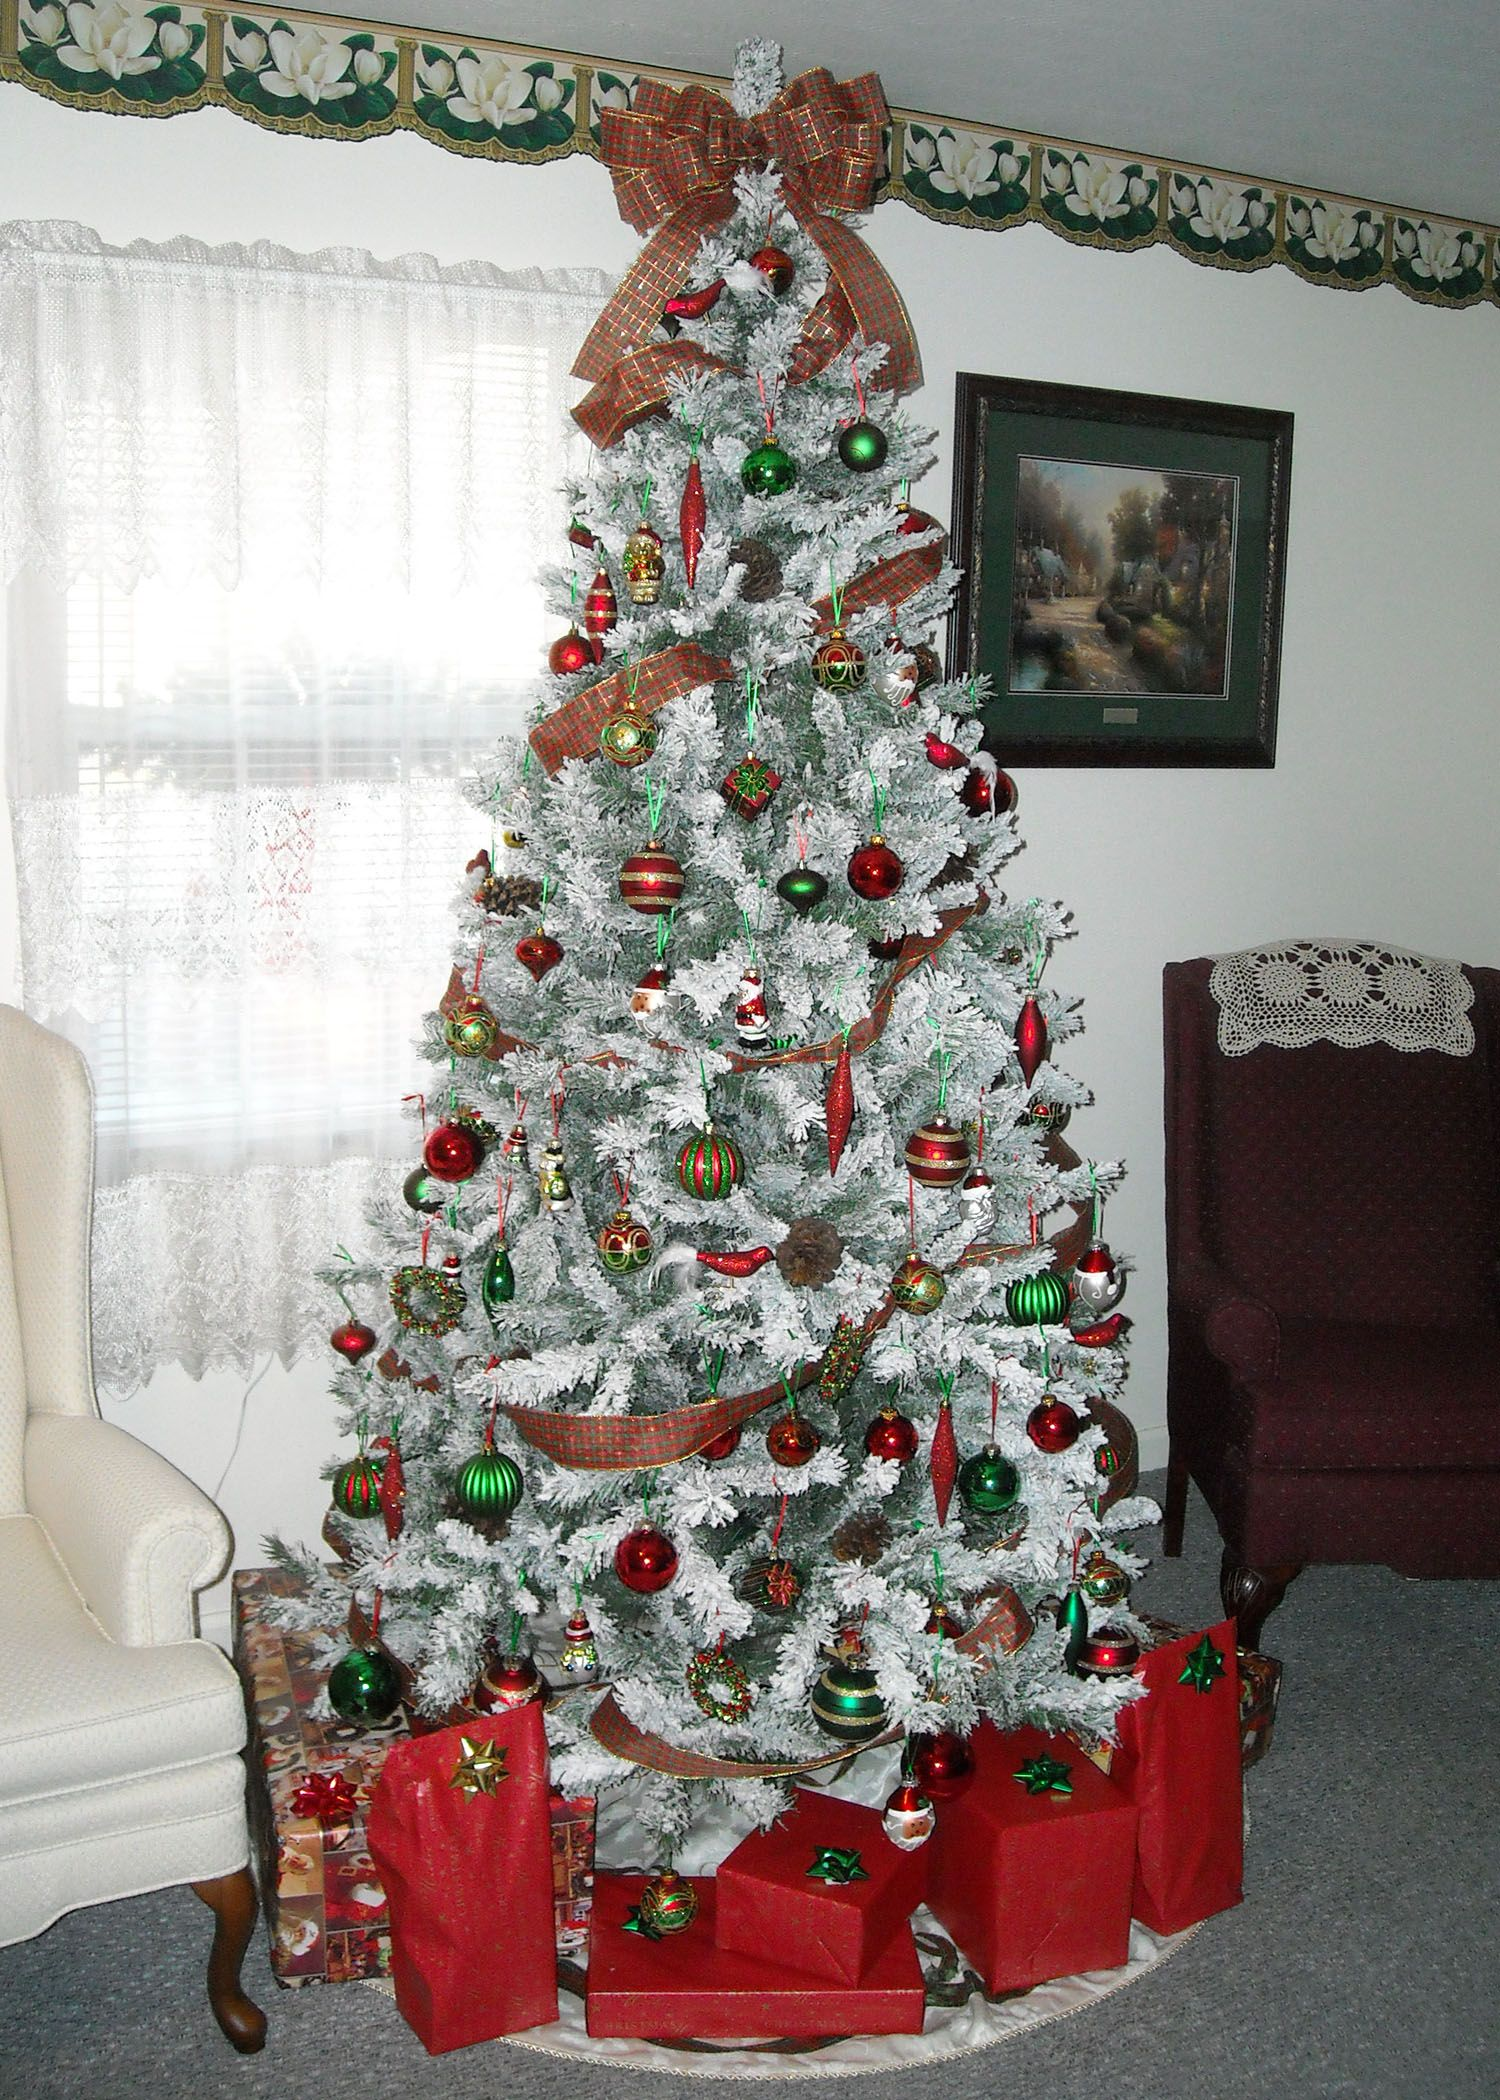 This is my snow flocked tree with a plaid red green and gold